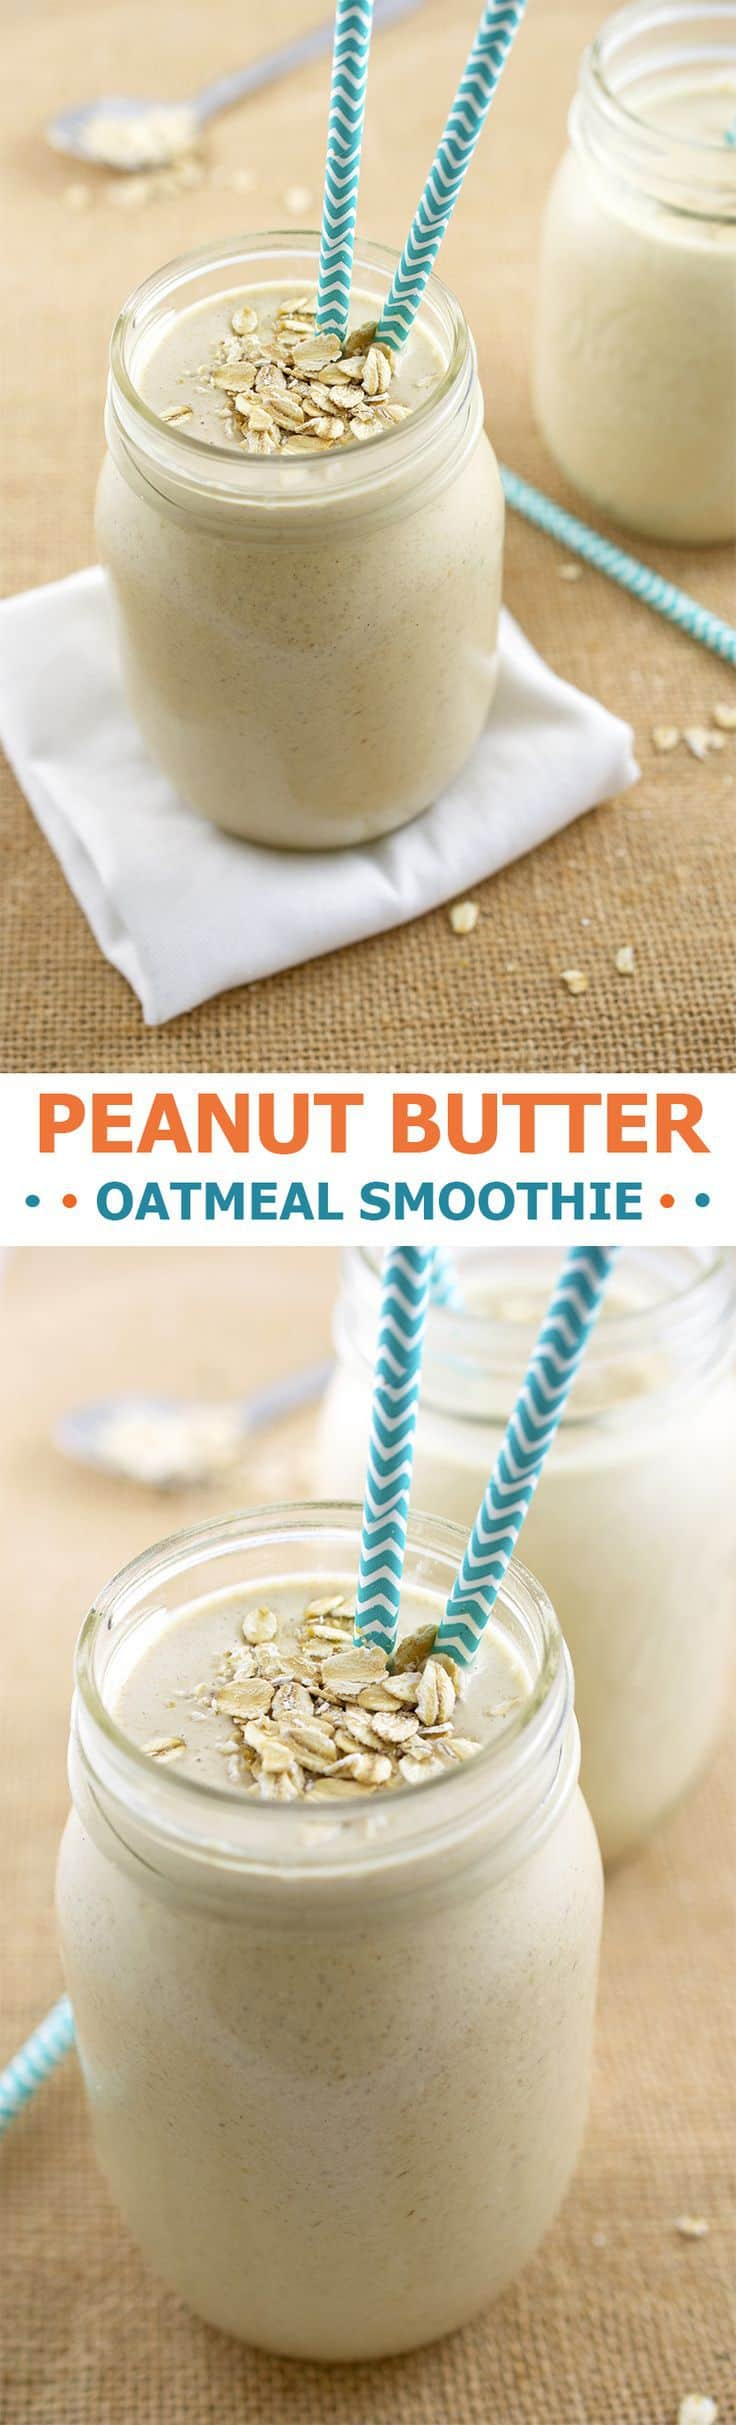 Peanut butter oatmeal smoothie.